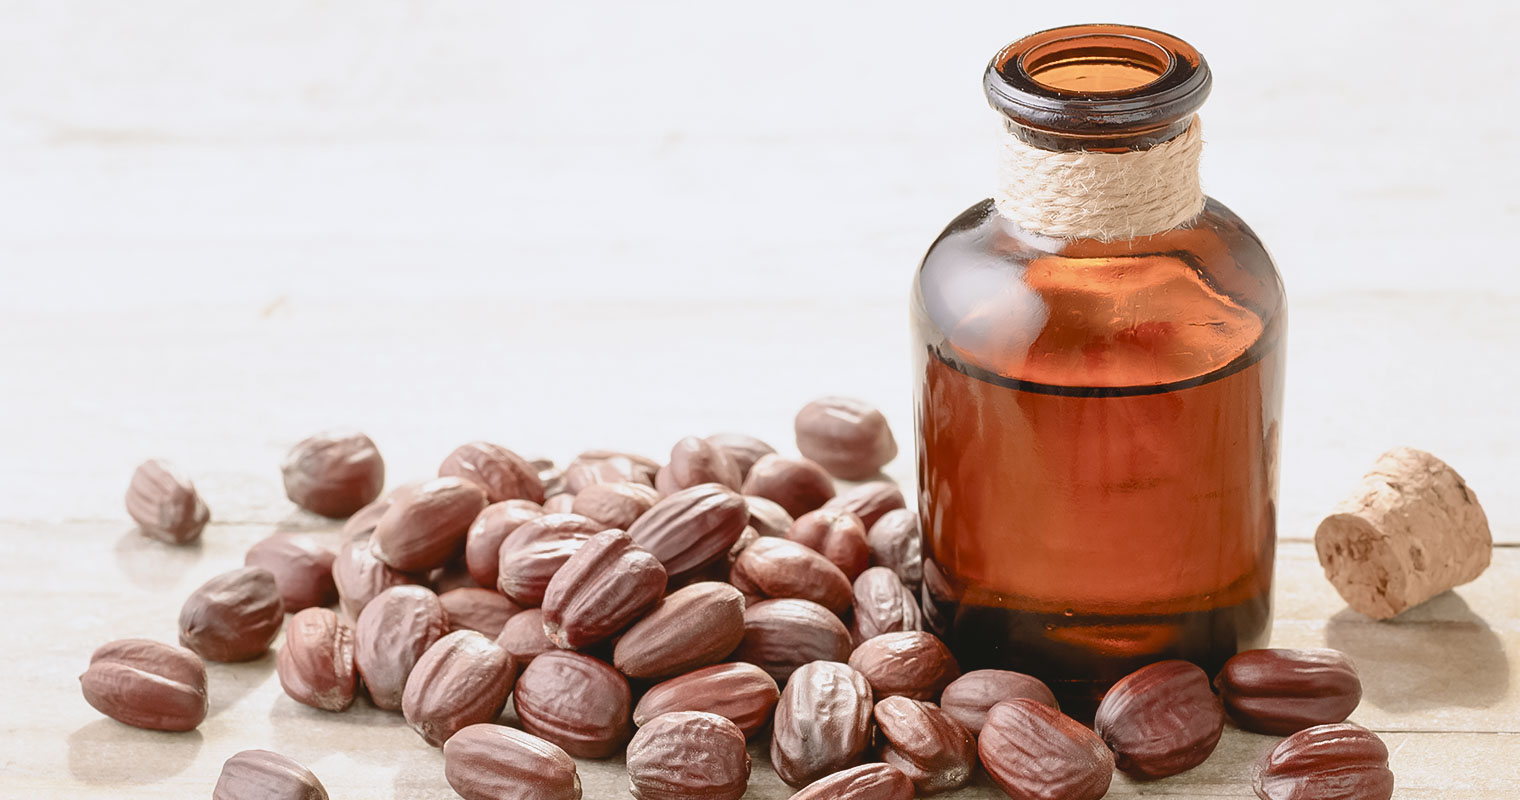 A bottle of Jojoba oil surrounded by Jojoba seeds